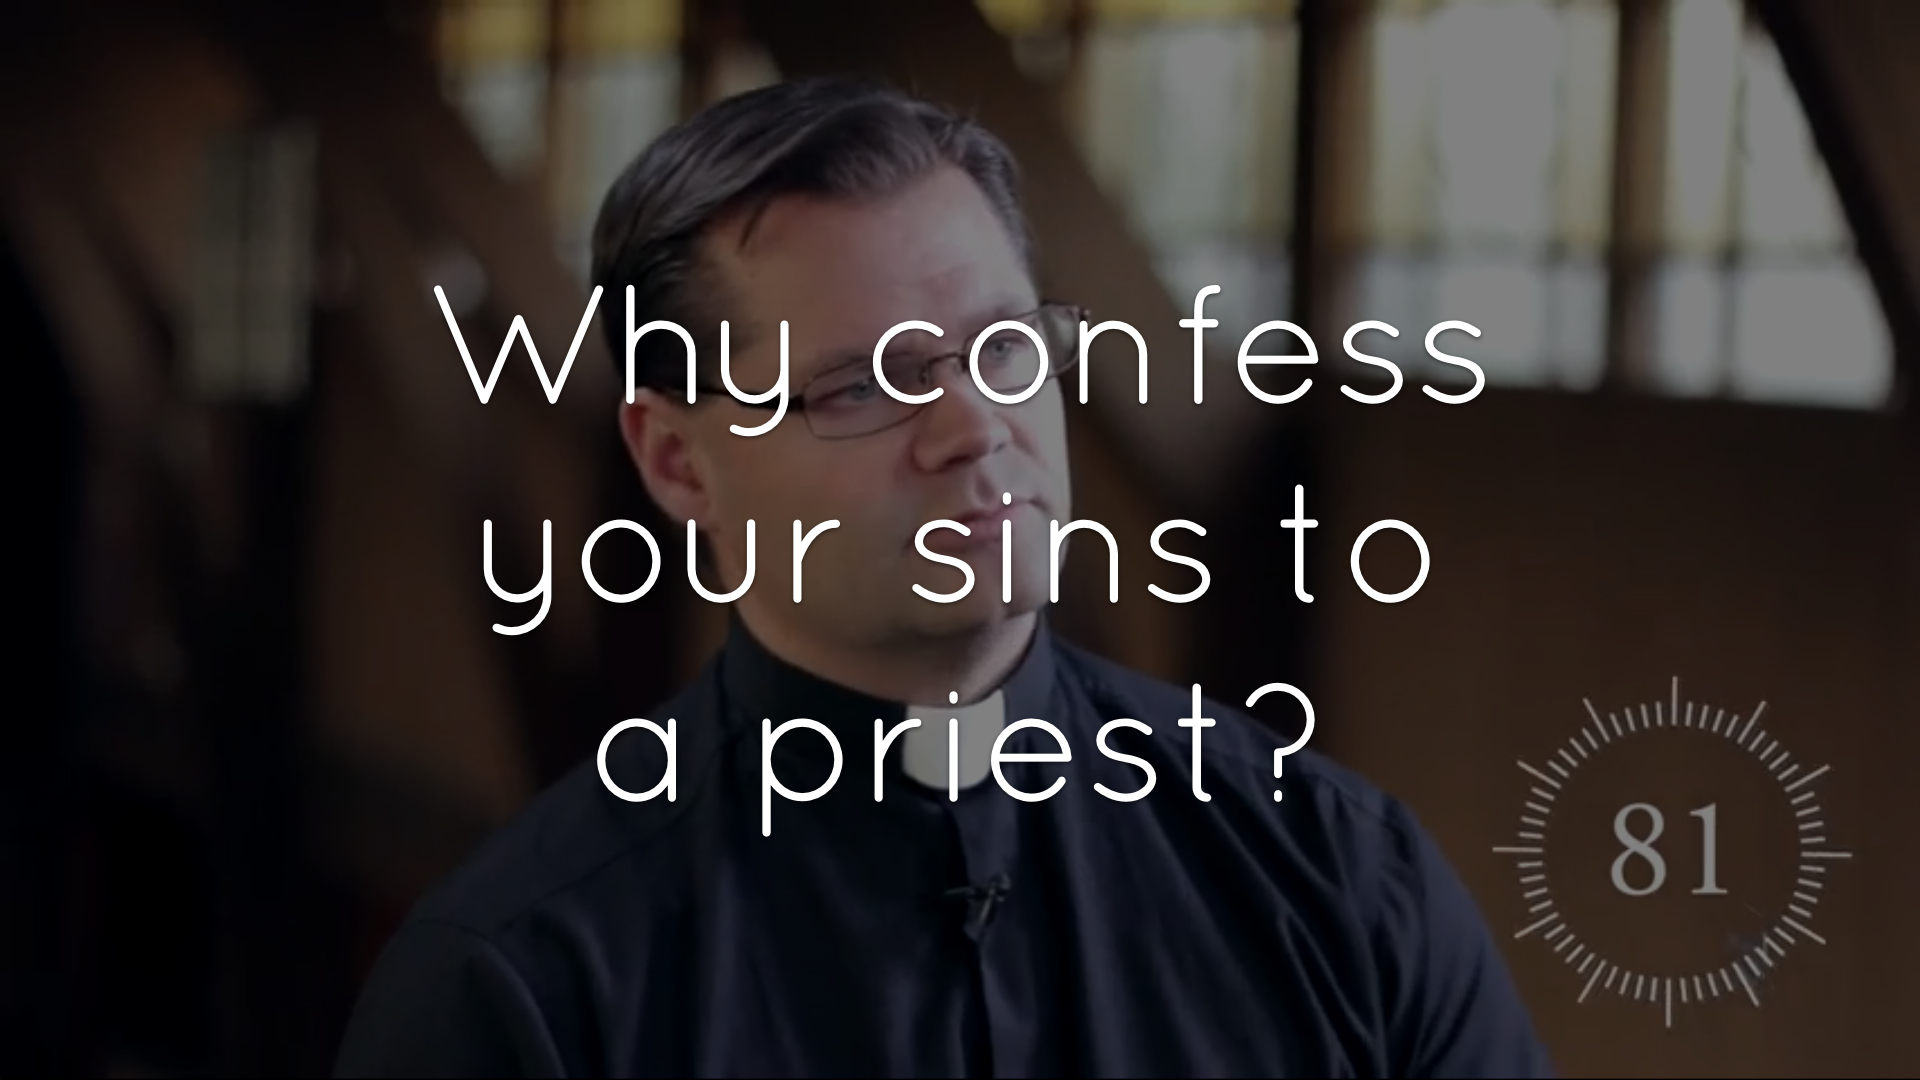 why do catholics confess sins to a priest creed  why do catholics confess sins to a priest